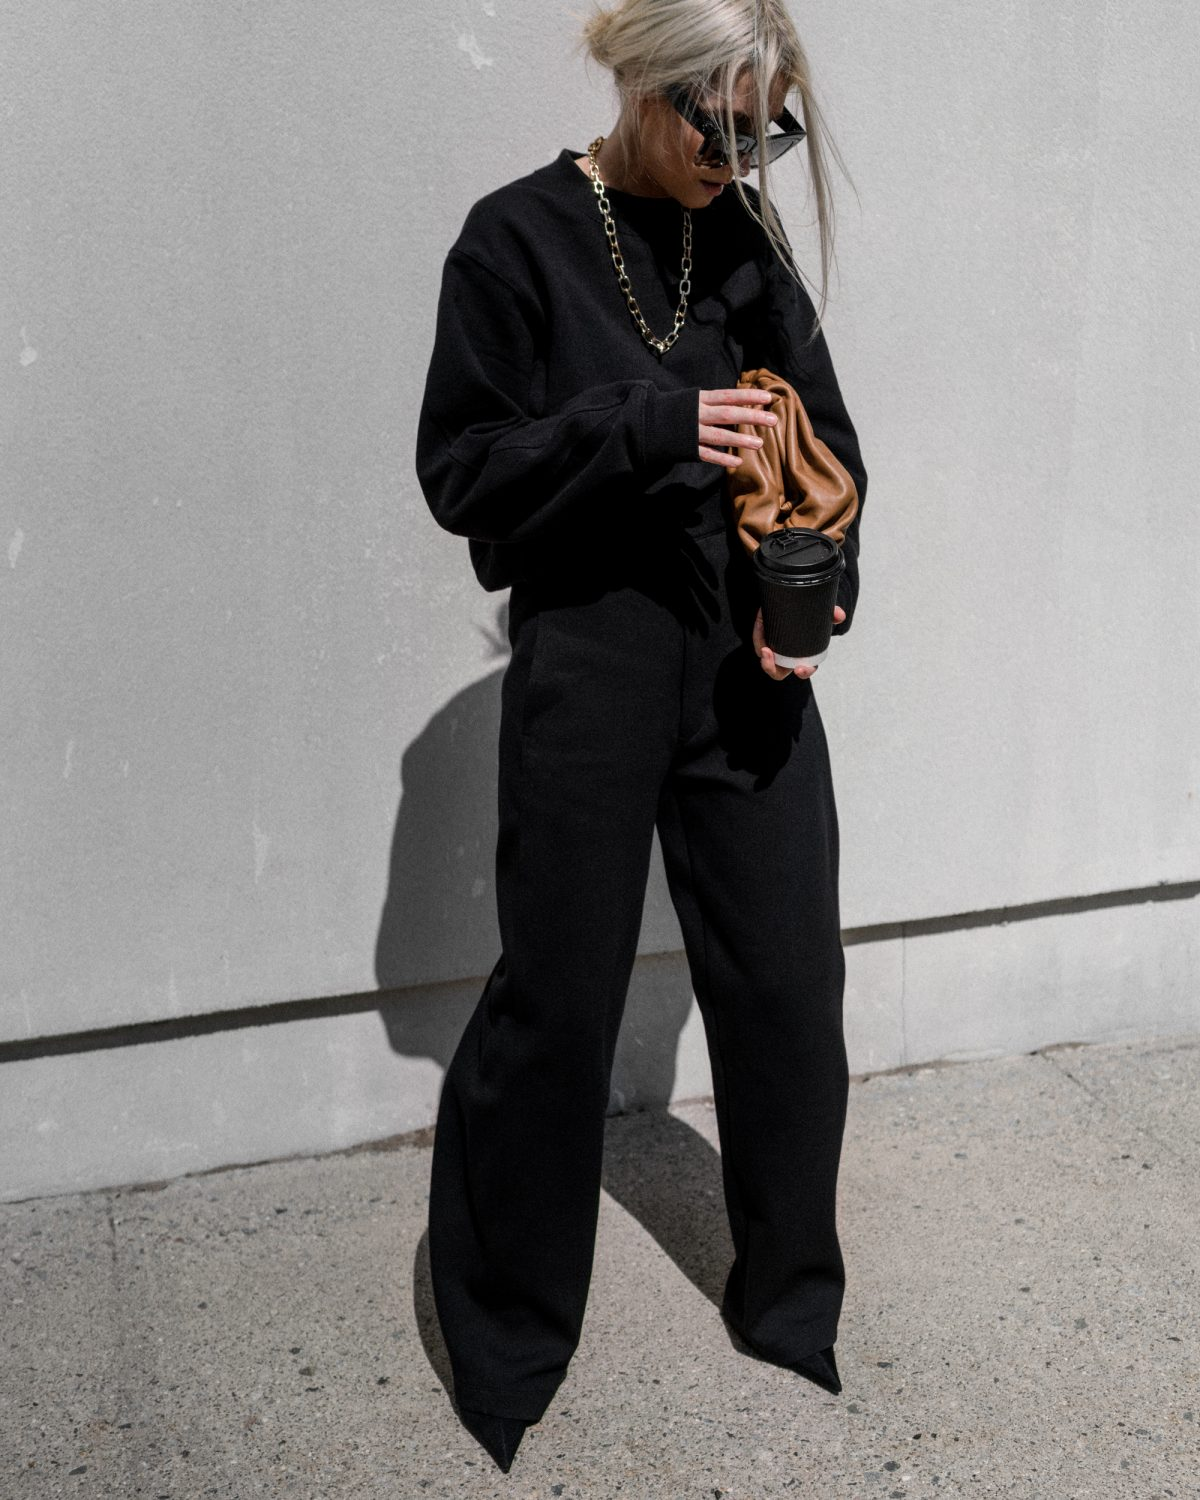 Steal Her Style: Sweats All Day | Love Daily Dose